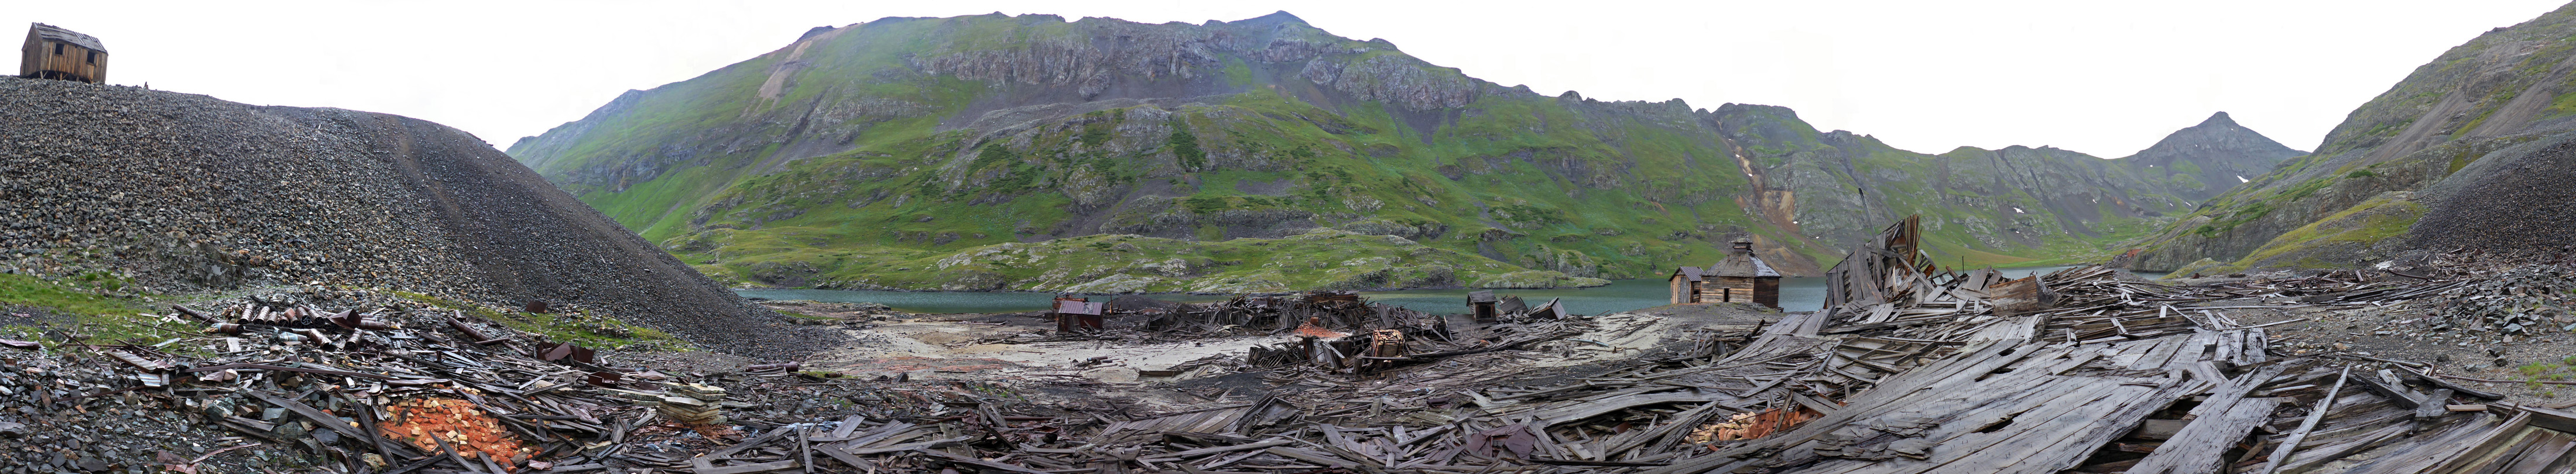 Panorama of the mine